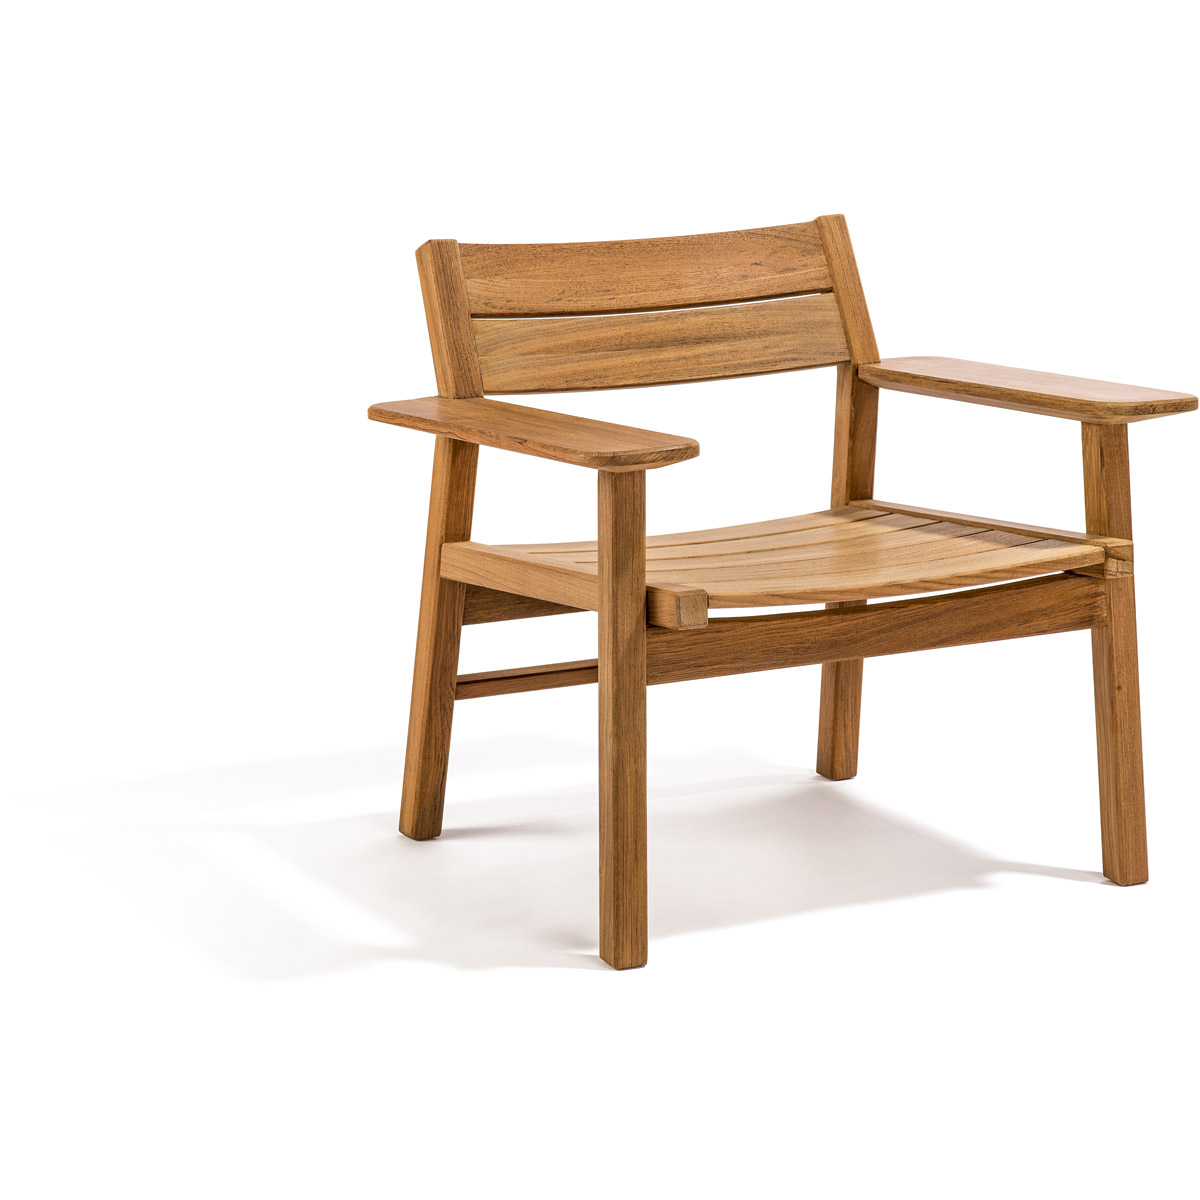 Image of: Original Teak Lounge Chair